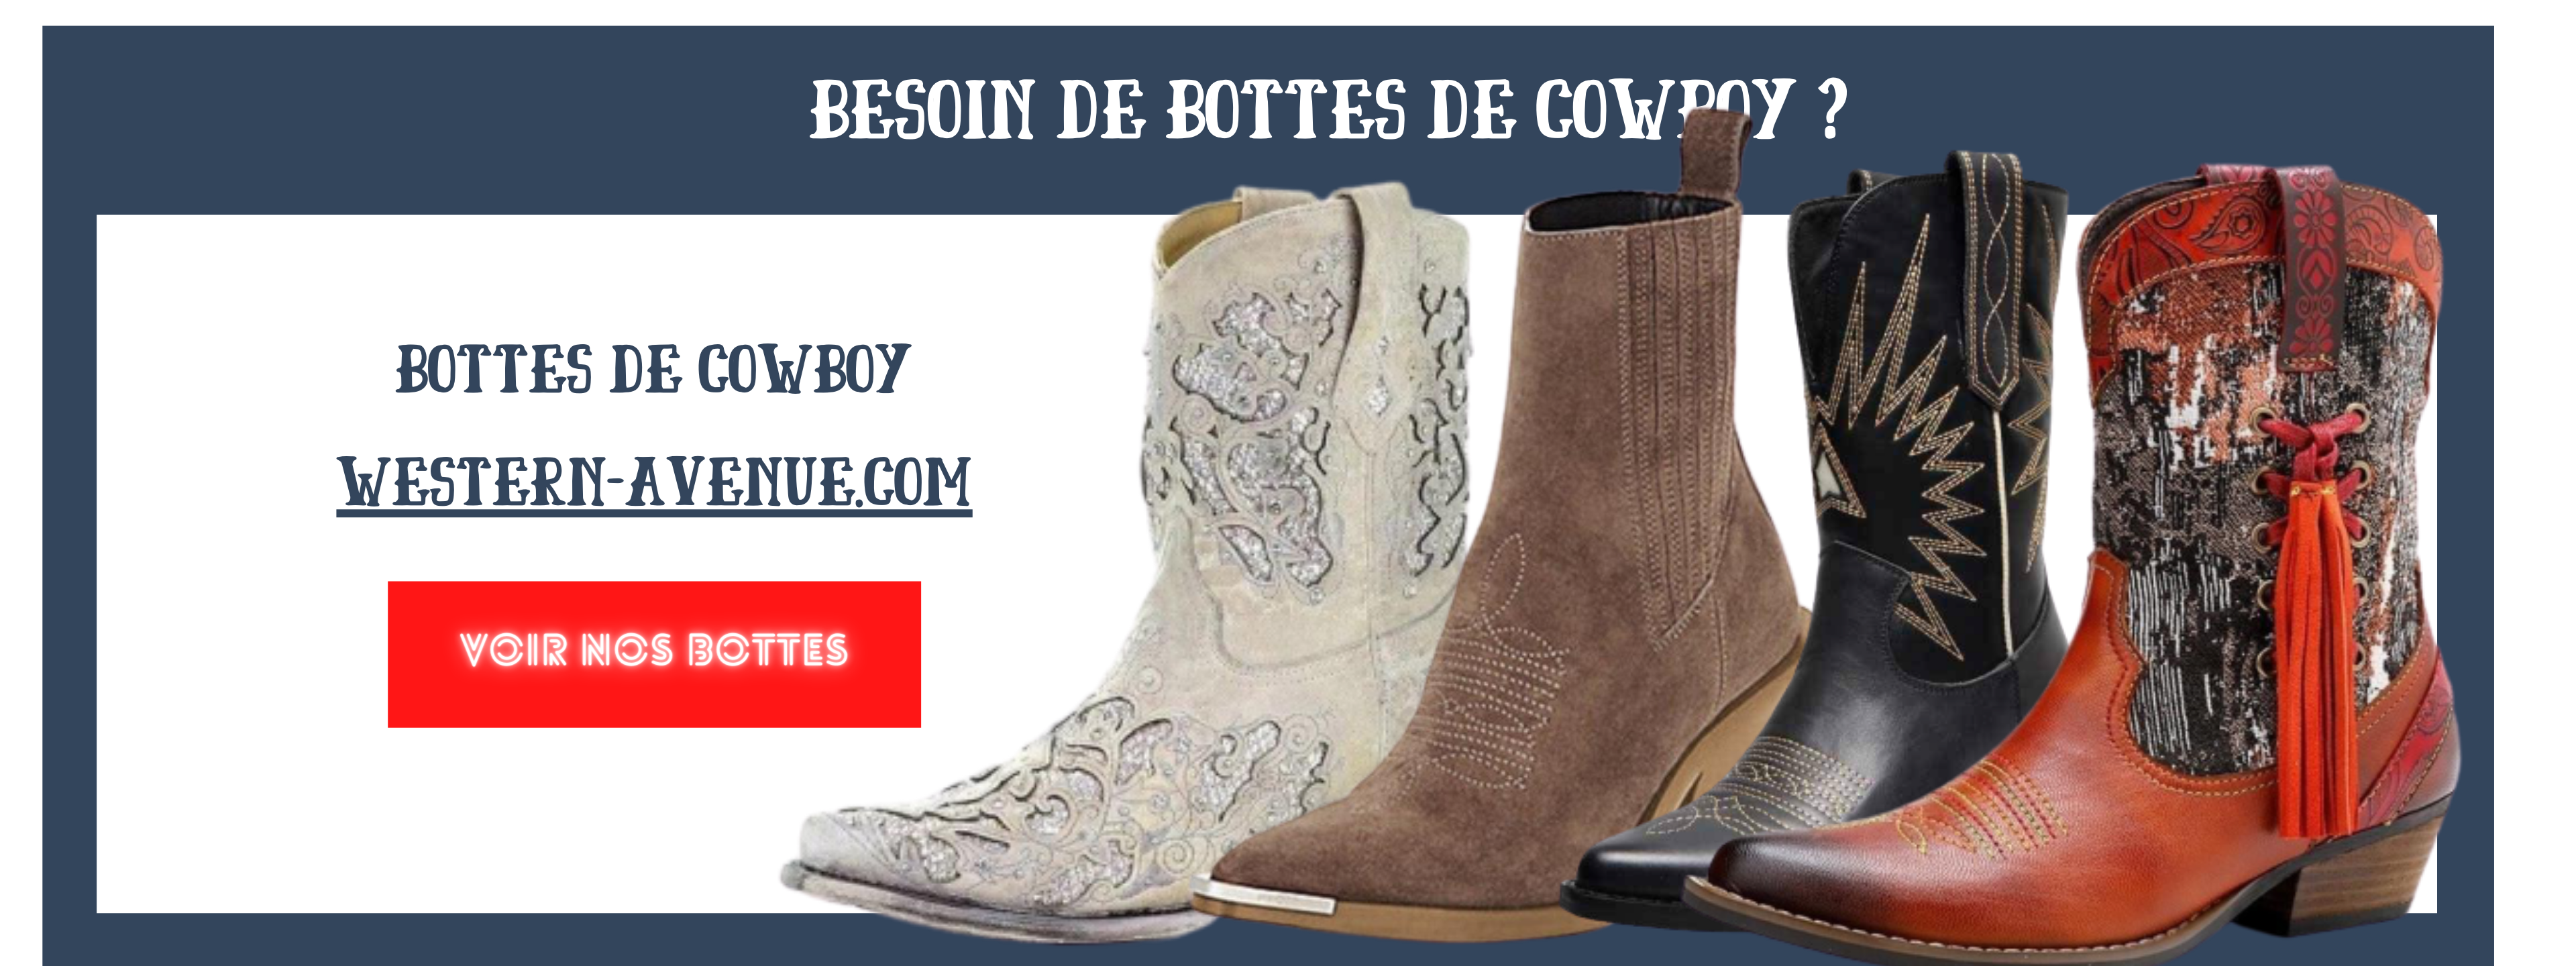 Collection bottes de cowboy